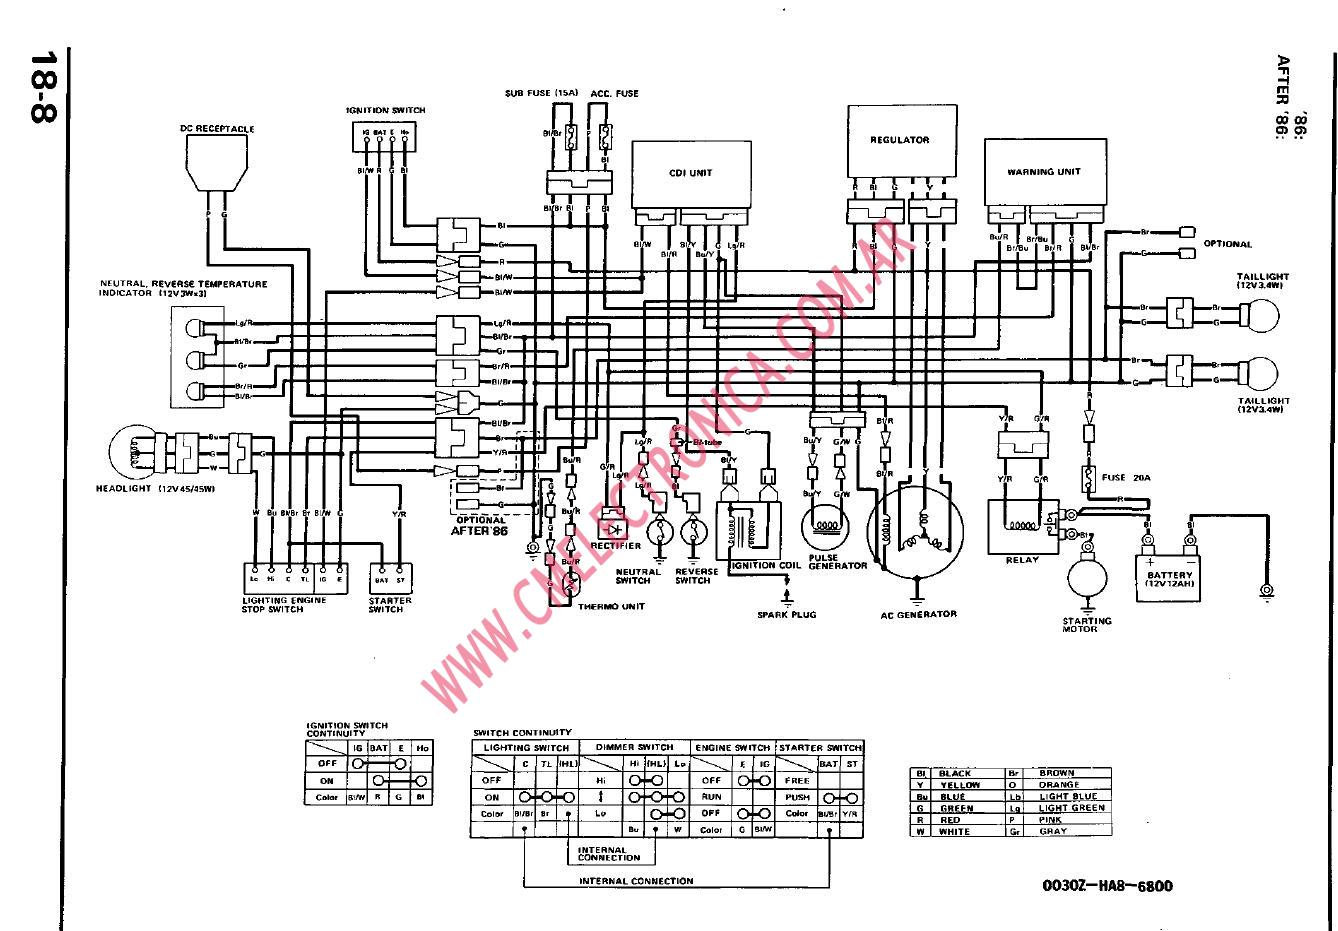 For A 06 Honda 250ex Wiring Diagram 250 Explained Diagrams Rh Dmdelectro Co 86 Fourtrax Vacuum Trx250ex